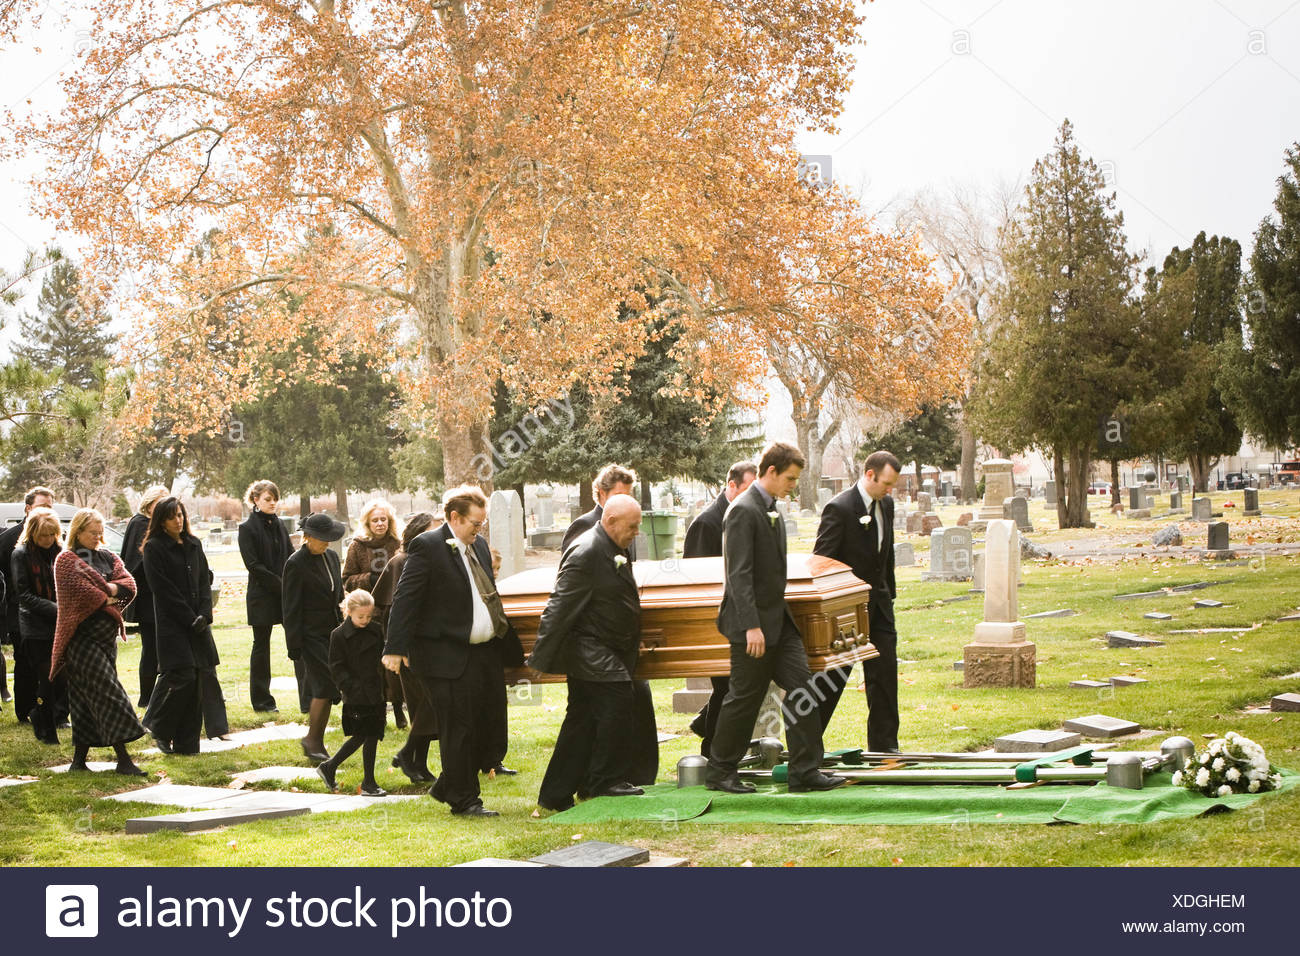 people at a funeral in a cemetery - Stock Image